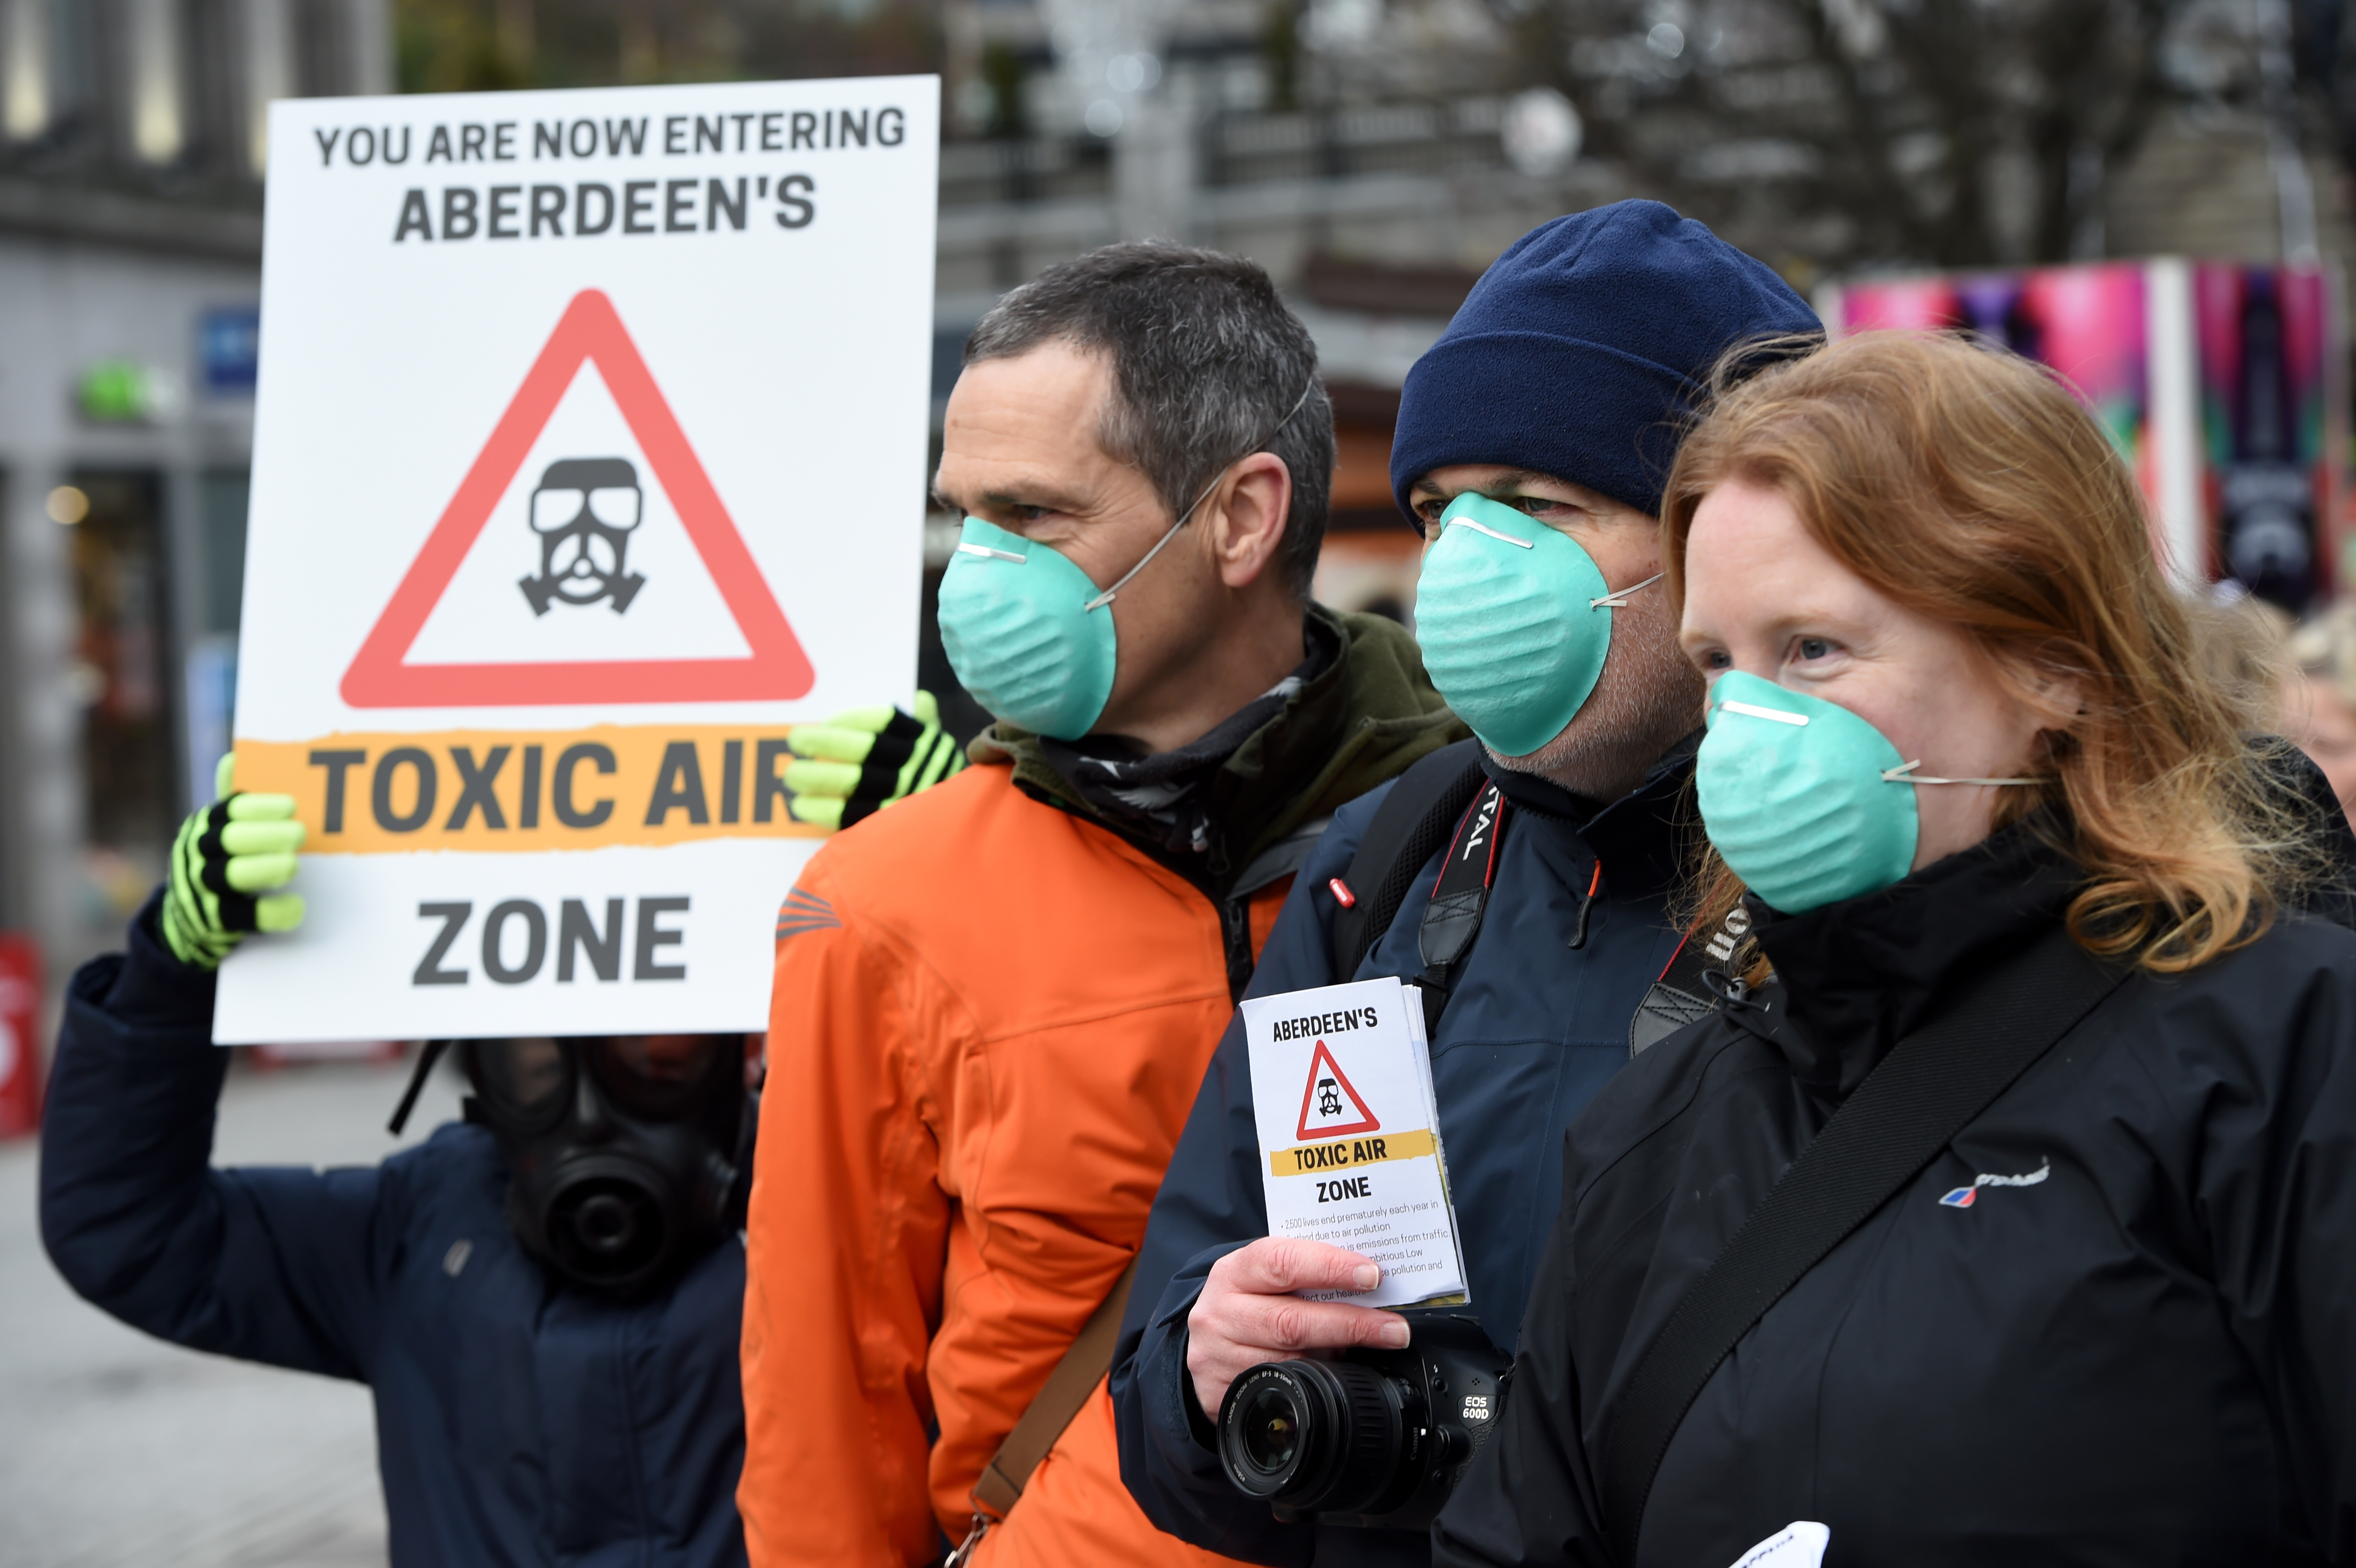 Campaingers held signs and wore masks